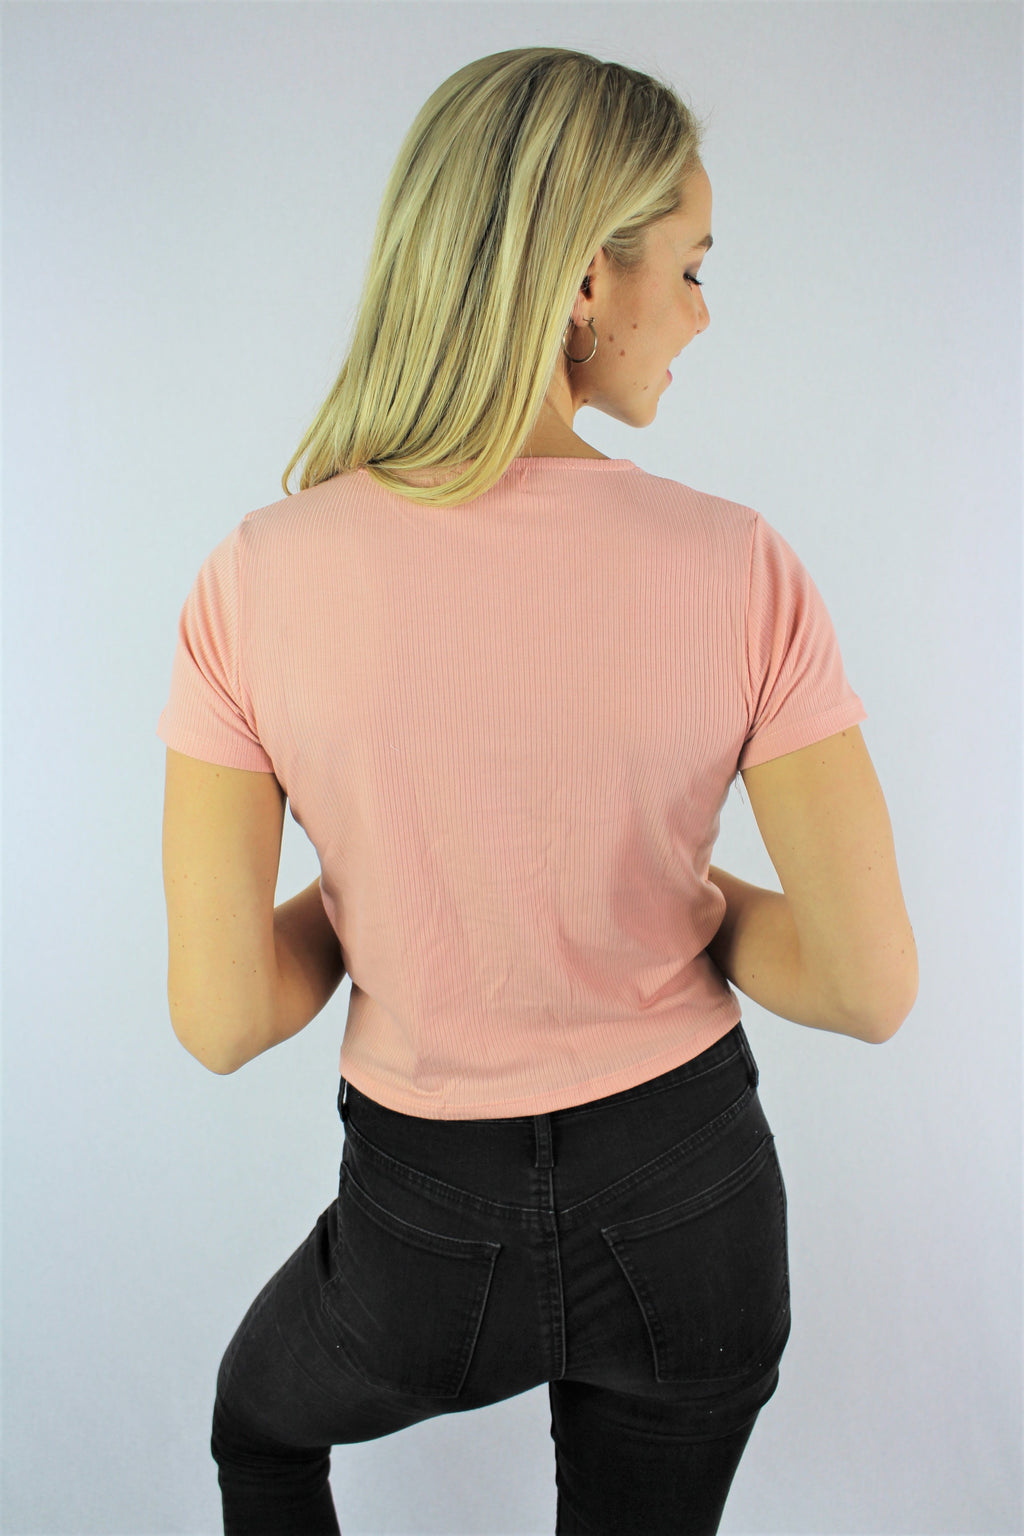 Women's Short Sleeve Crop Top with Cinched Front